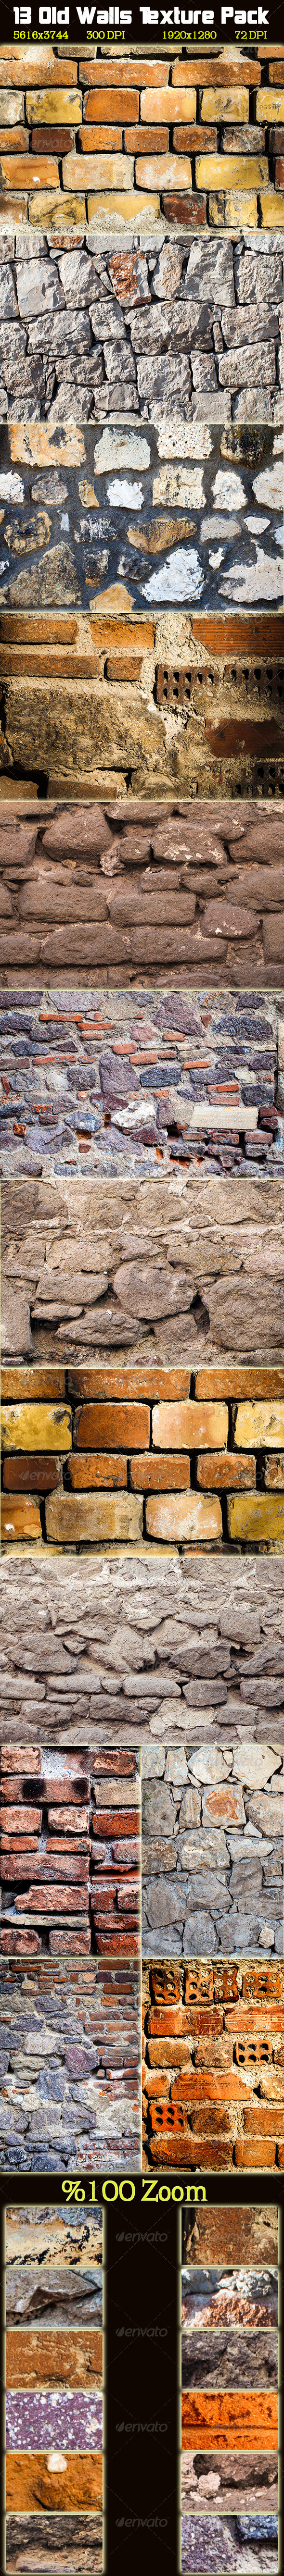 GraphicRiver 13 Old Wall Texture Pack 3282025